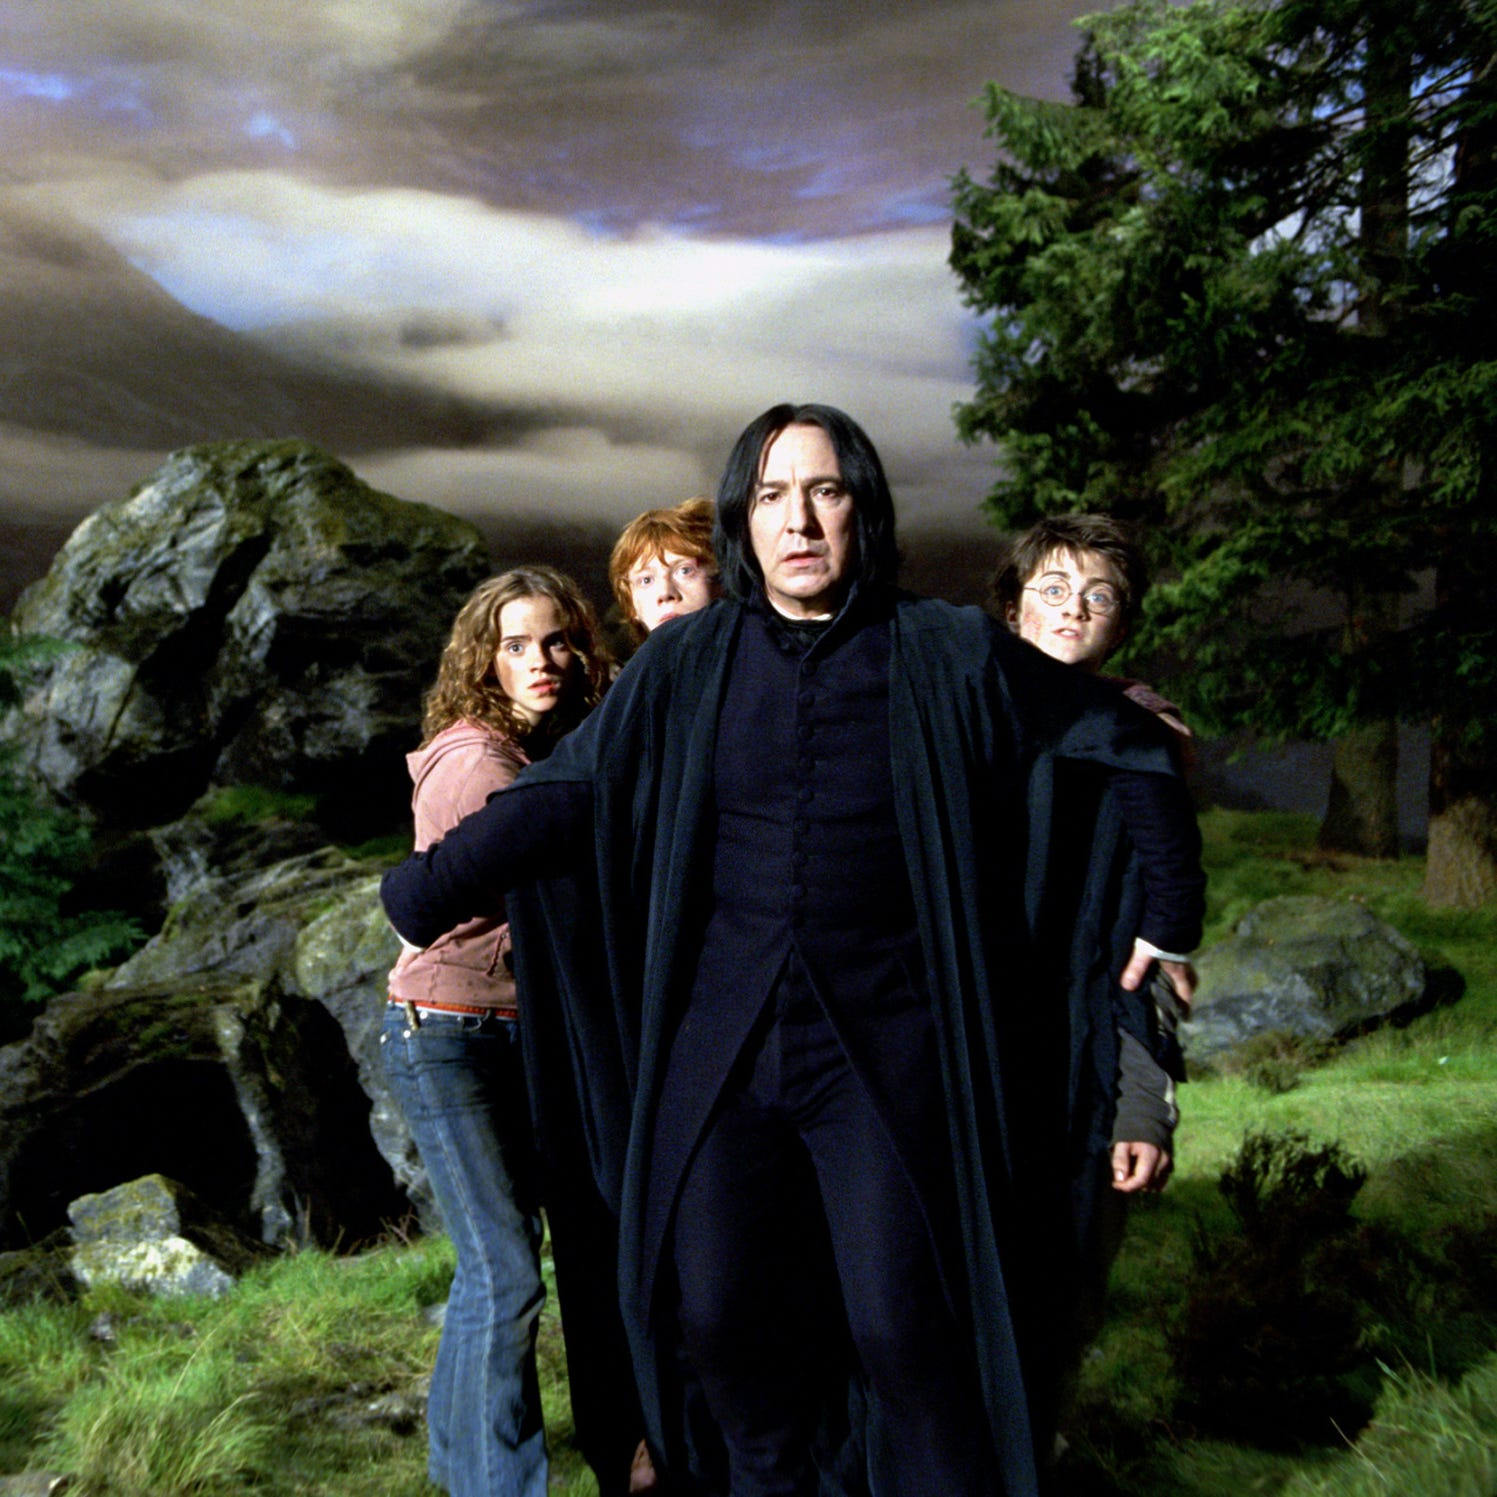 Yes, the Lyric is playing all 8 'Harry Potter' movies this summer